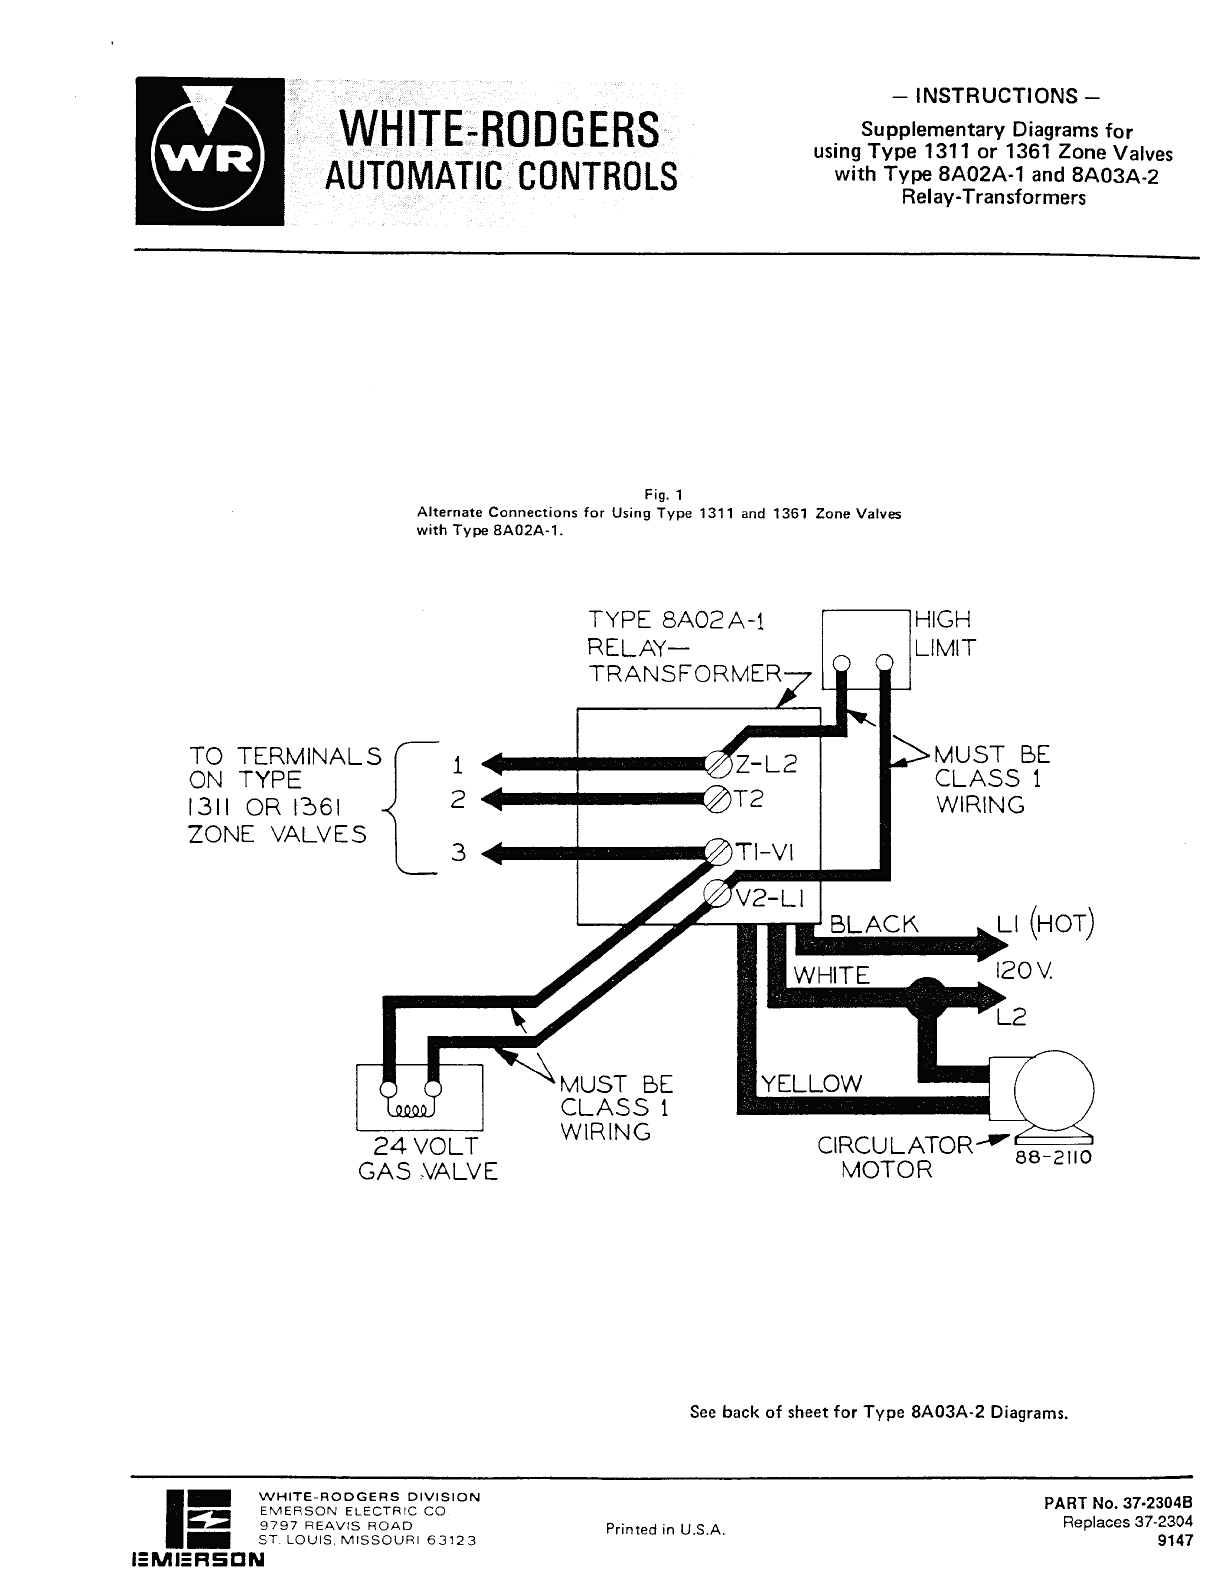 white rodgers 1311 102 wiring diagram Download-free wiring diagram Honeywell Zone Valve Wiring Diagram Honeywell 4 Wire Zone Valve of 3-o